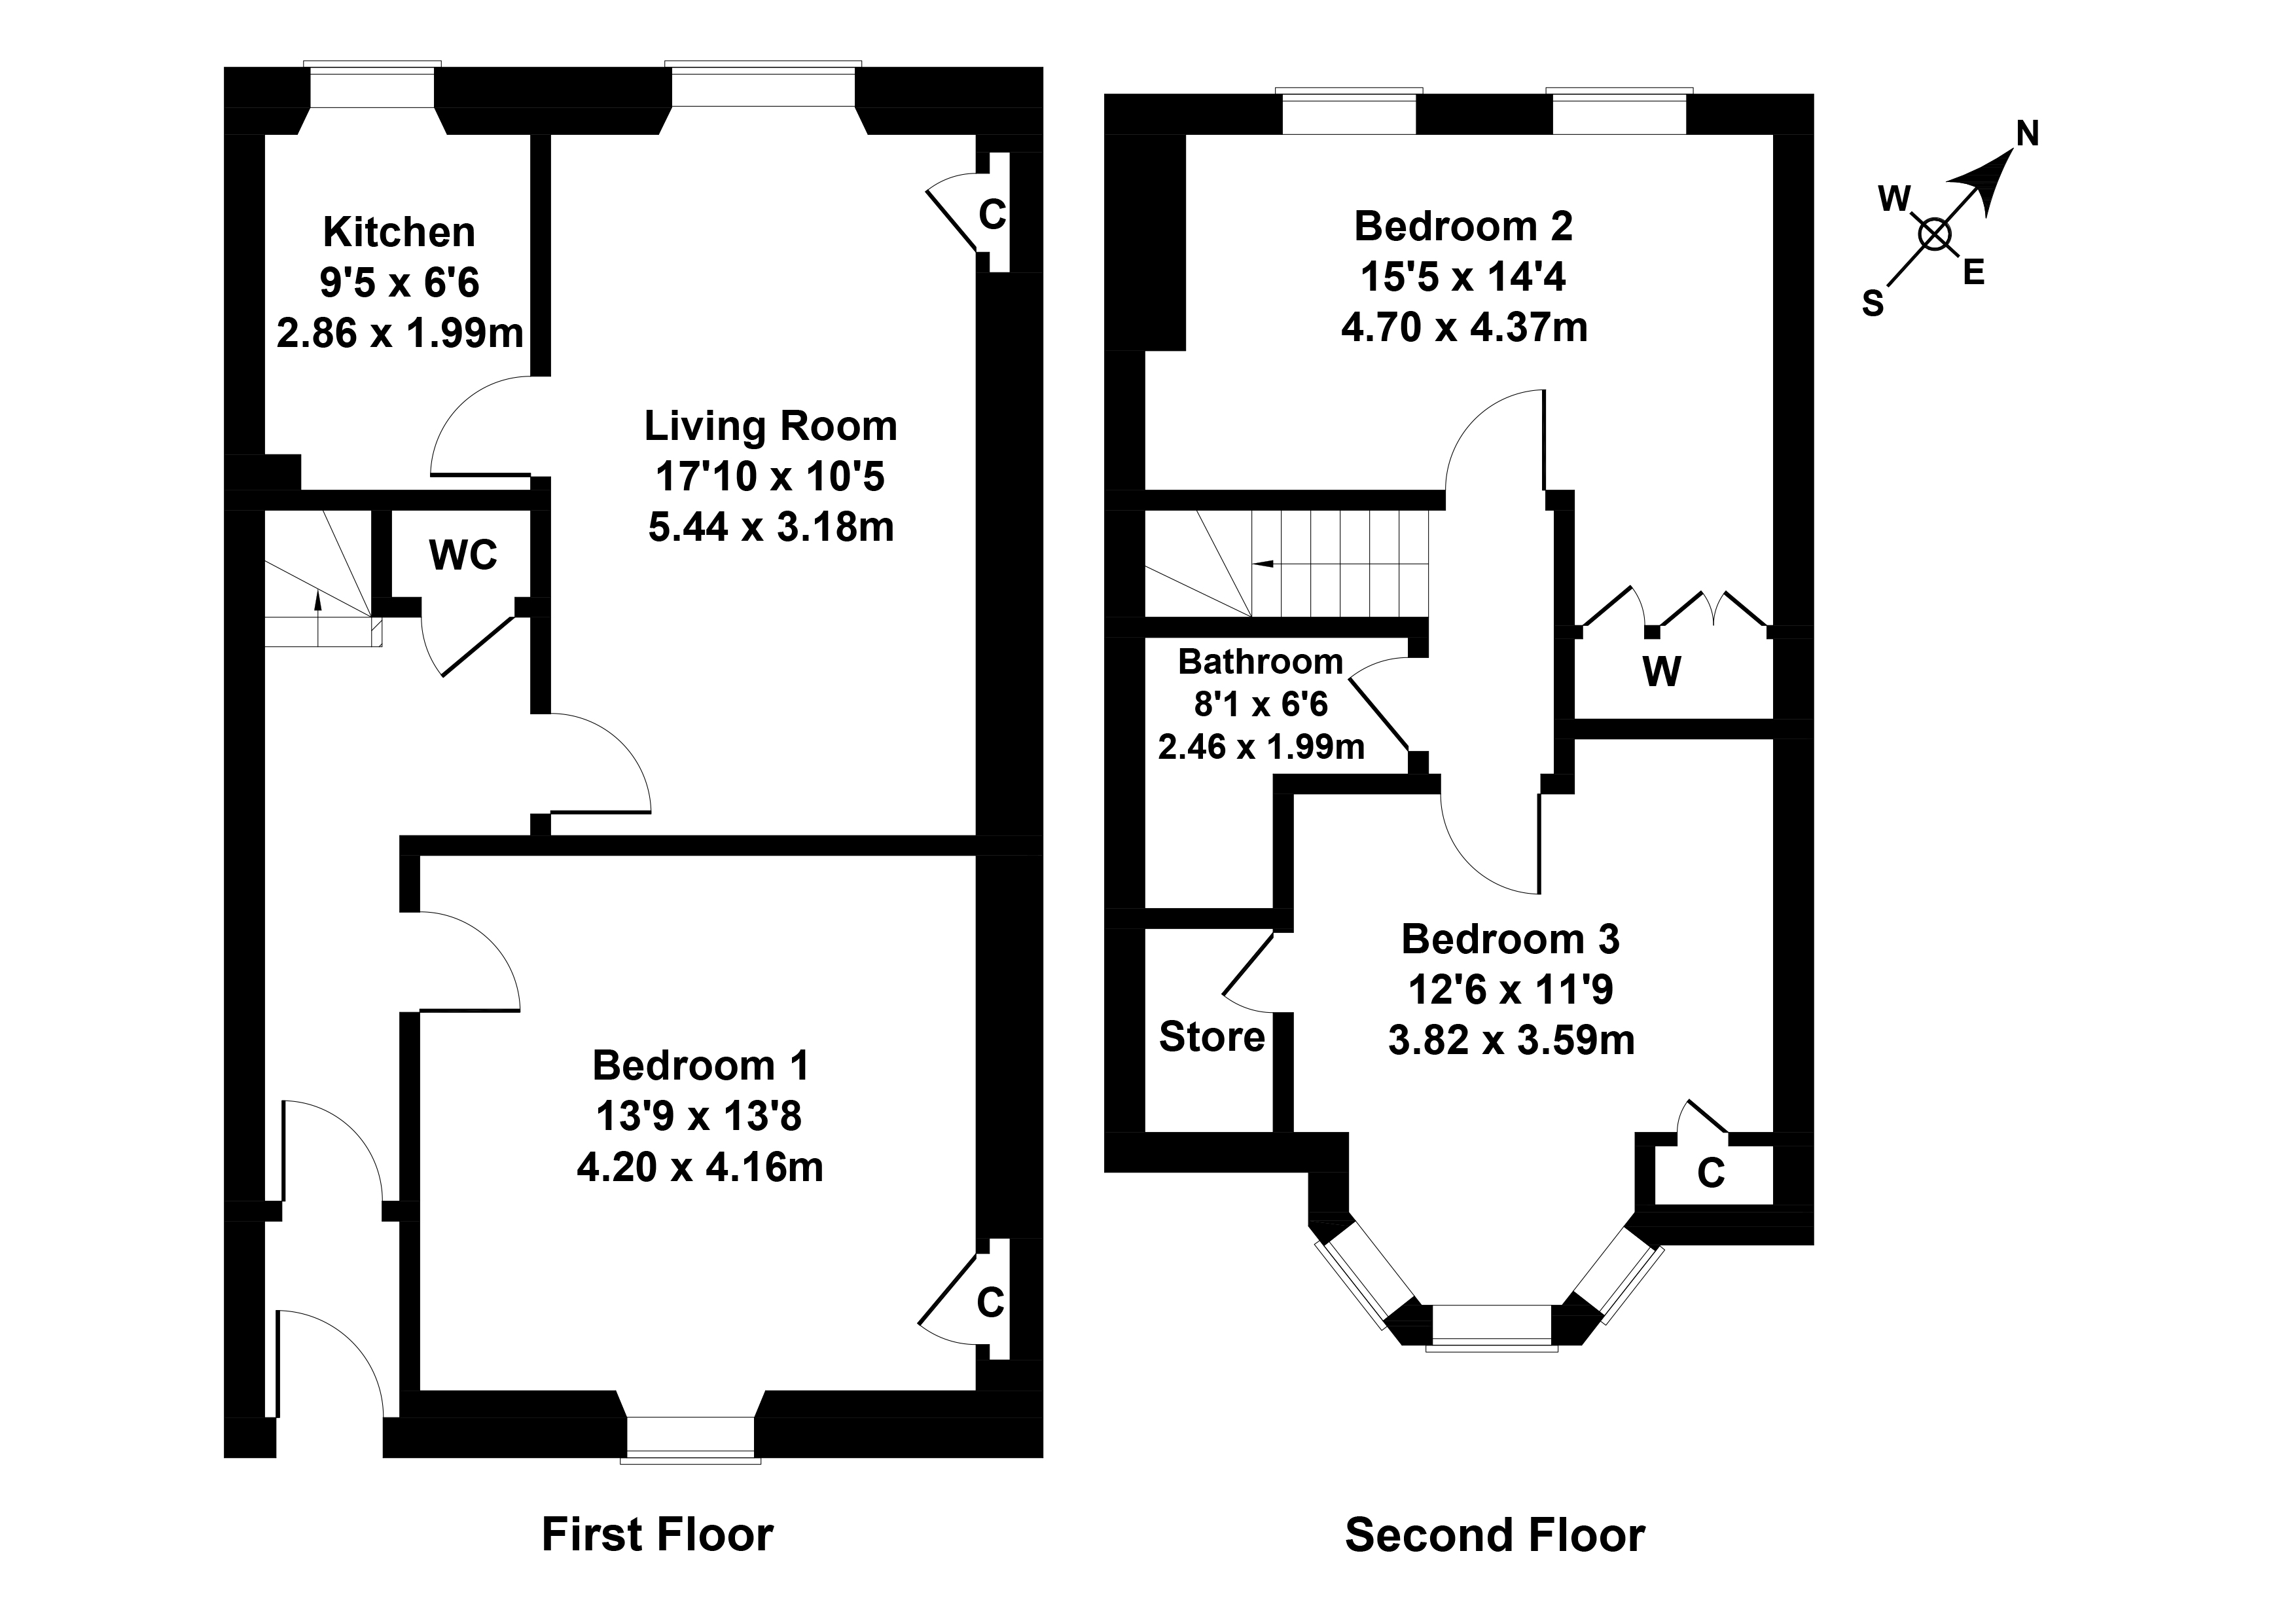 Floorplan 1 of 10 McLaren Terrace, Haymarket, Edinburgh, EH11 2BN